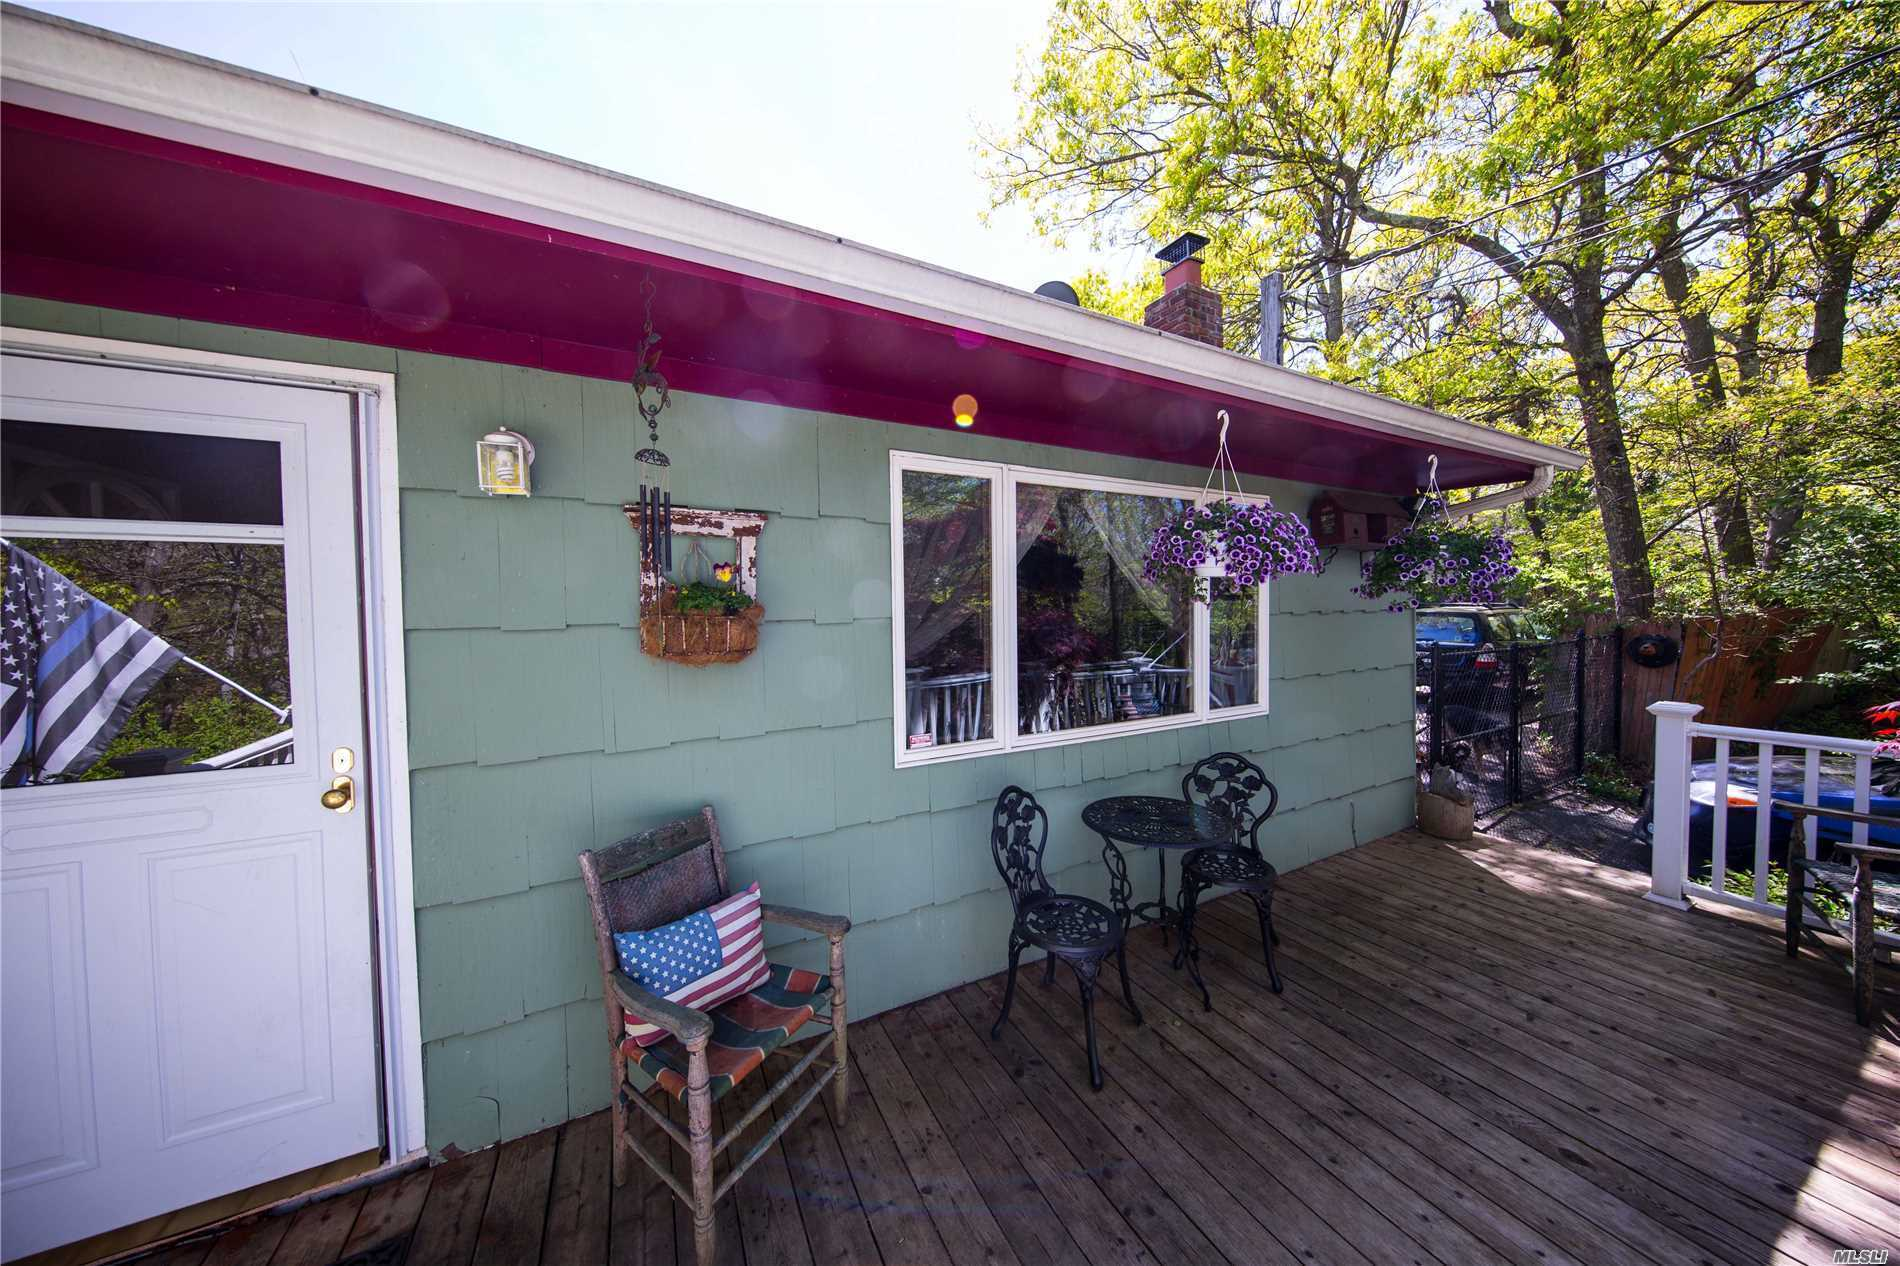 Beautiful Private Setting. Great For Nature Lovers. Nice Seclusion With Deer And Turkey As Neighbors. Lr Has Brick Wall Fireplace. Newer Appliances. Mostly Updated Windows, roof and many more updates all appliances etc.